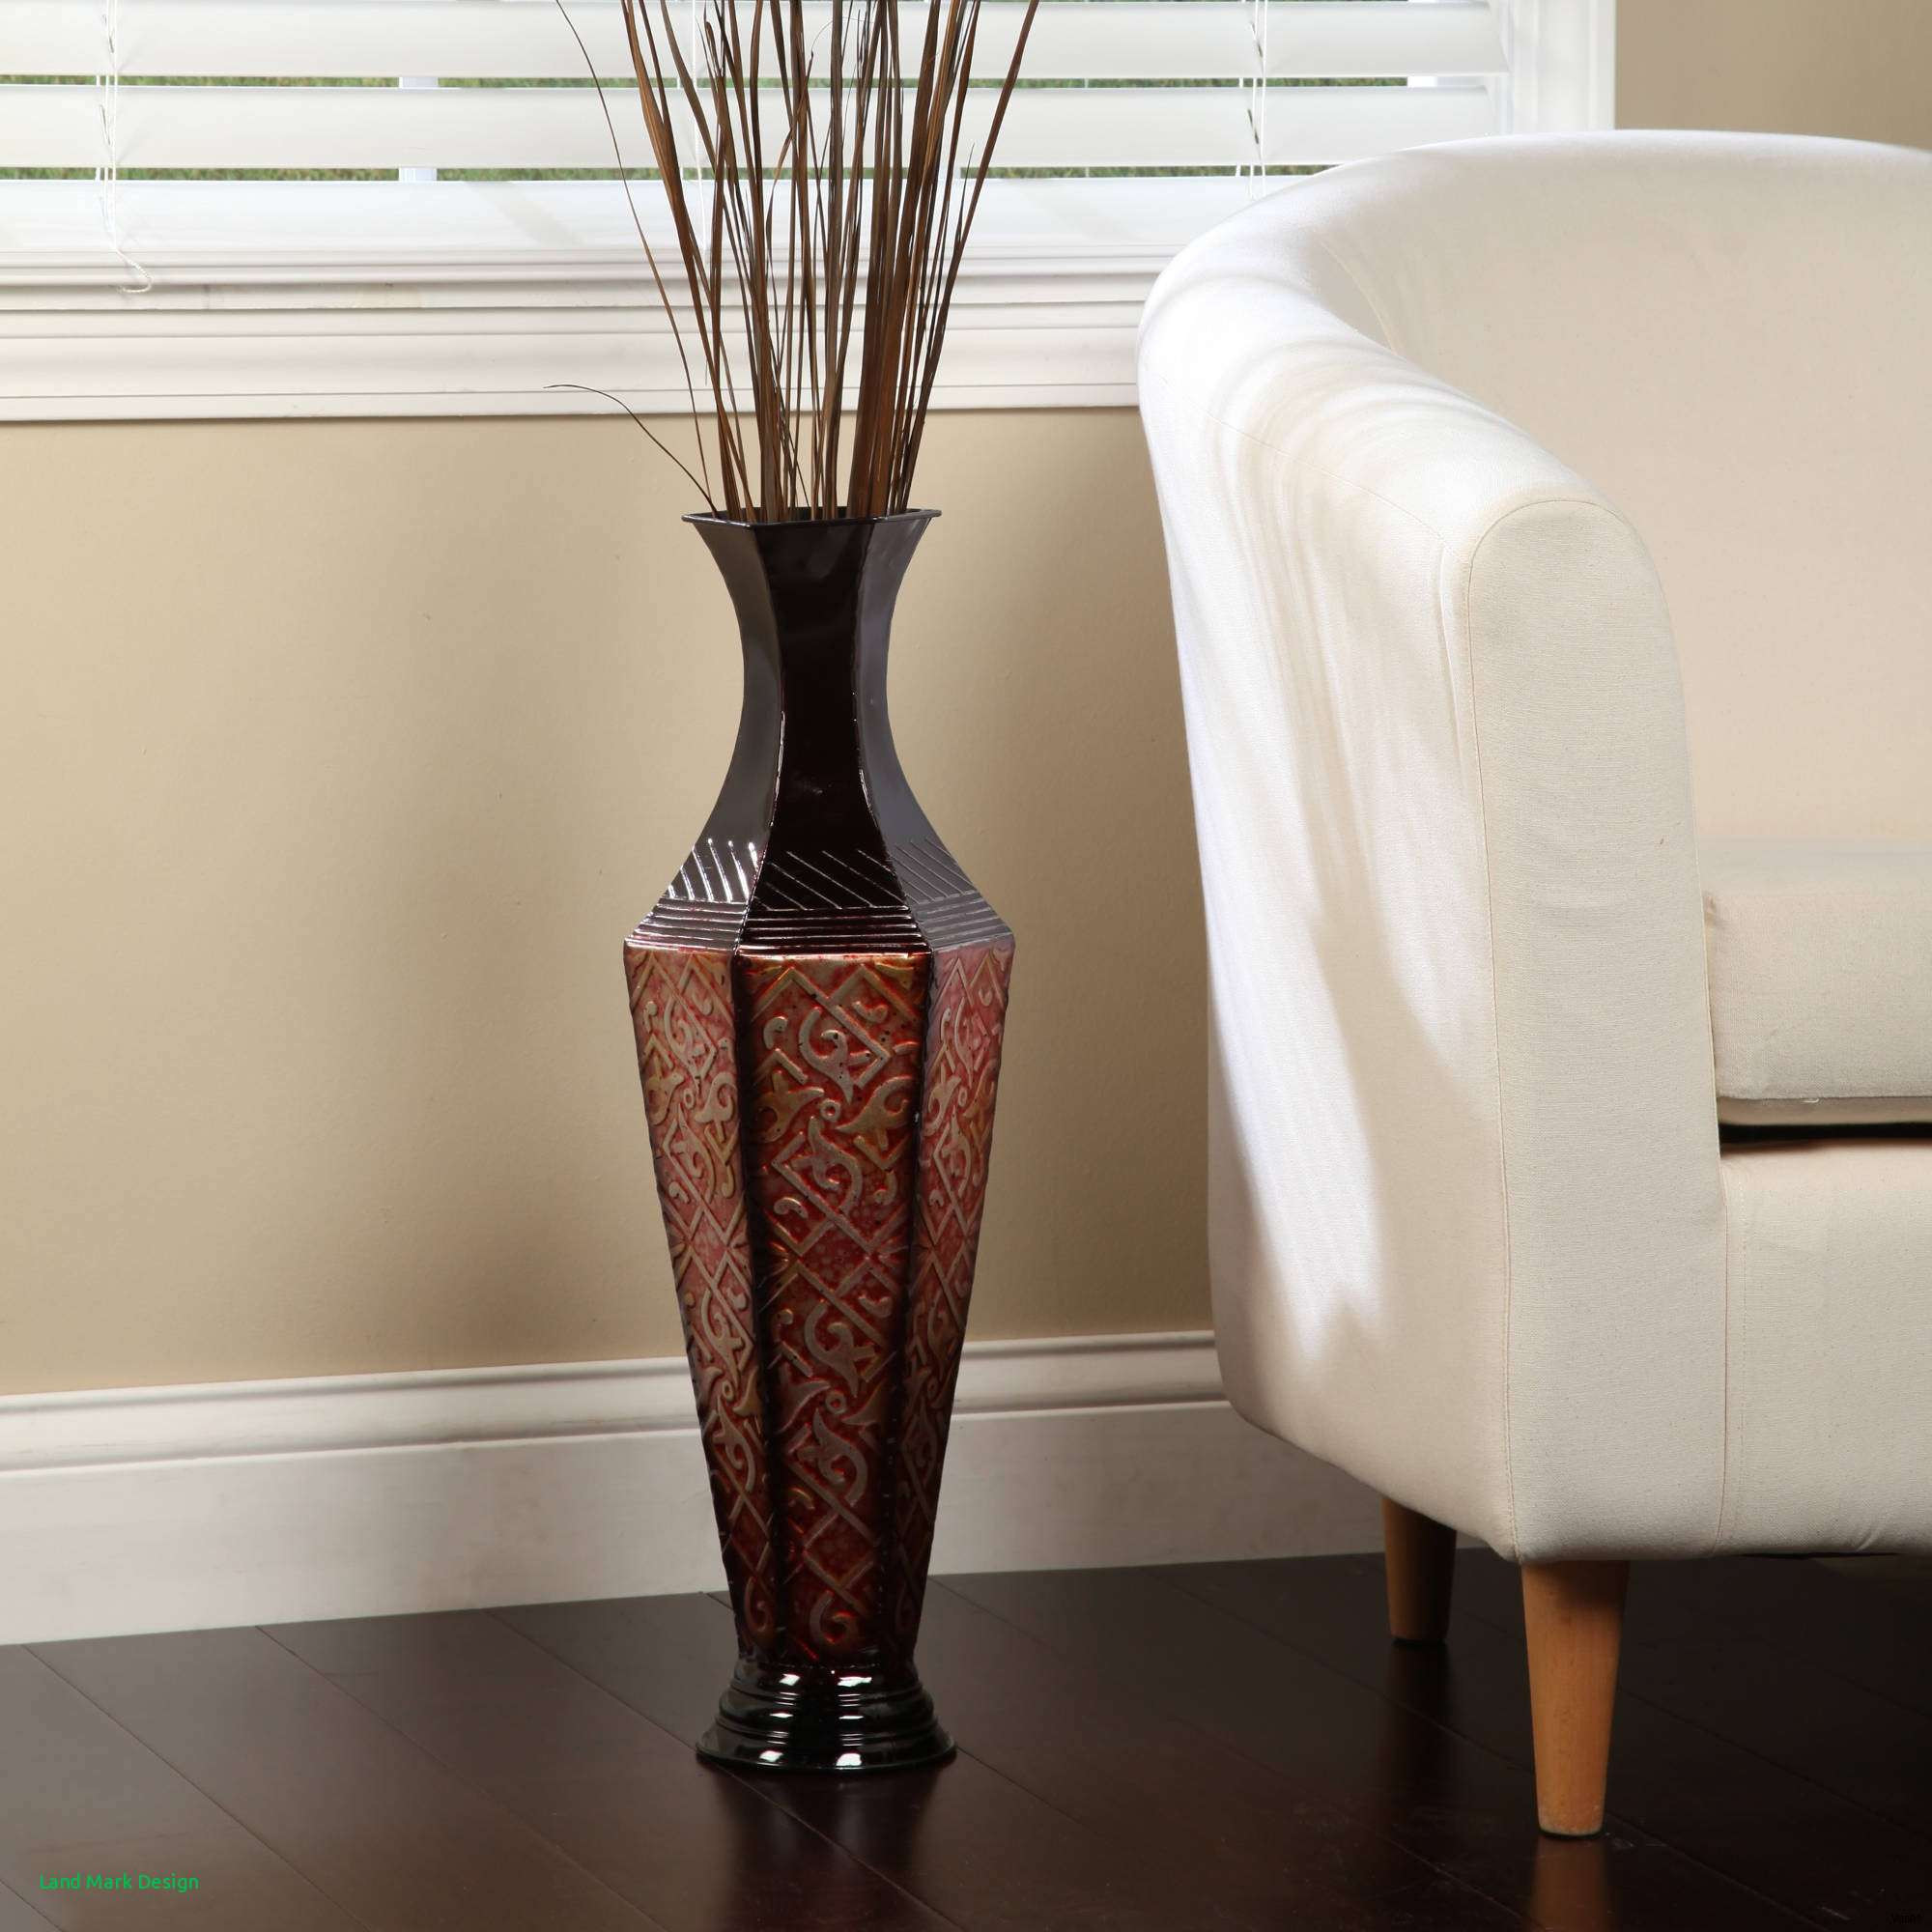 Cheap Oversized Floor Vases Of Large Home Design Throughout Ae6a8cef 16ef 4803 9e3d 95b931b671fc